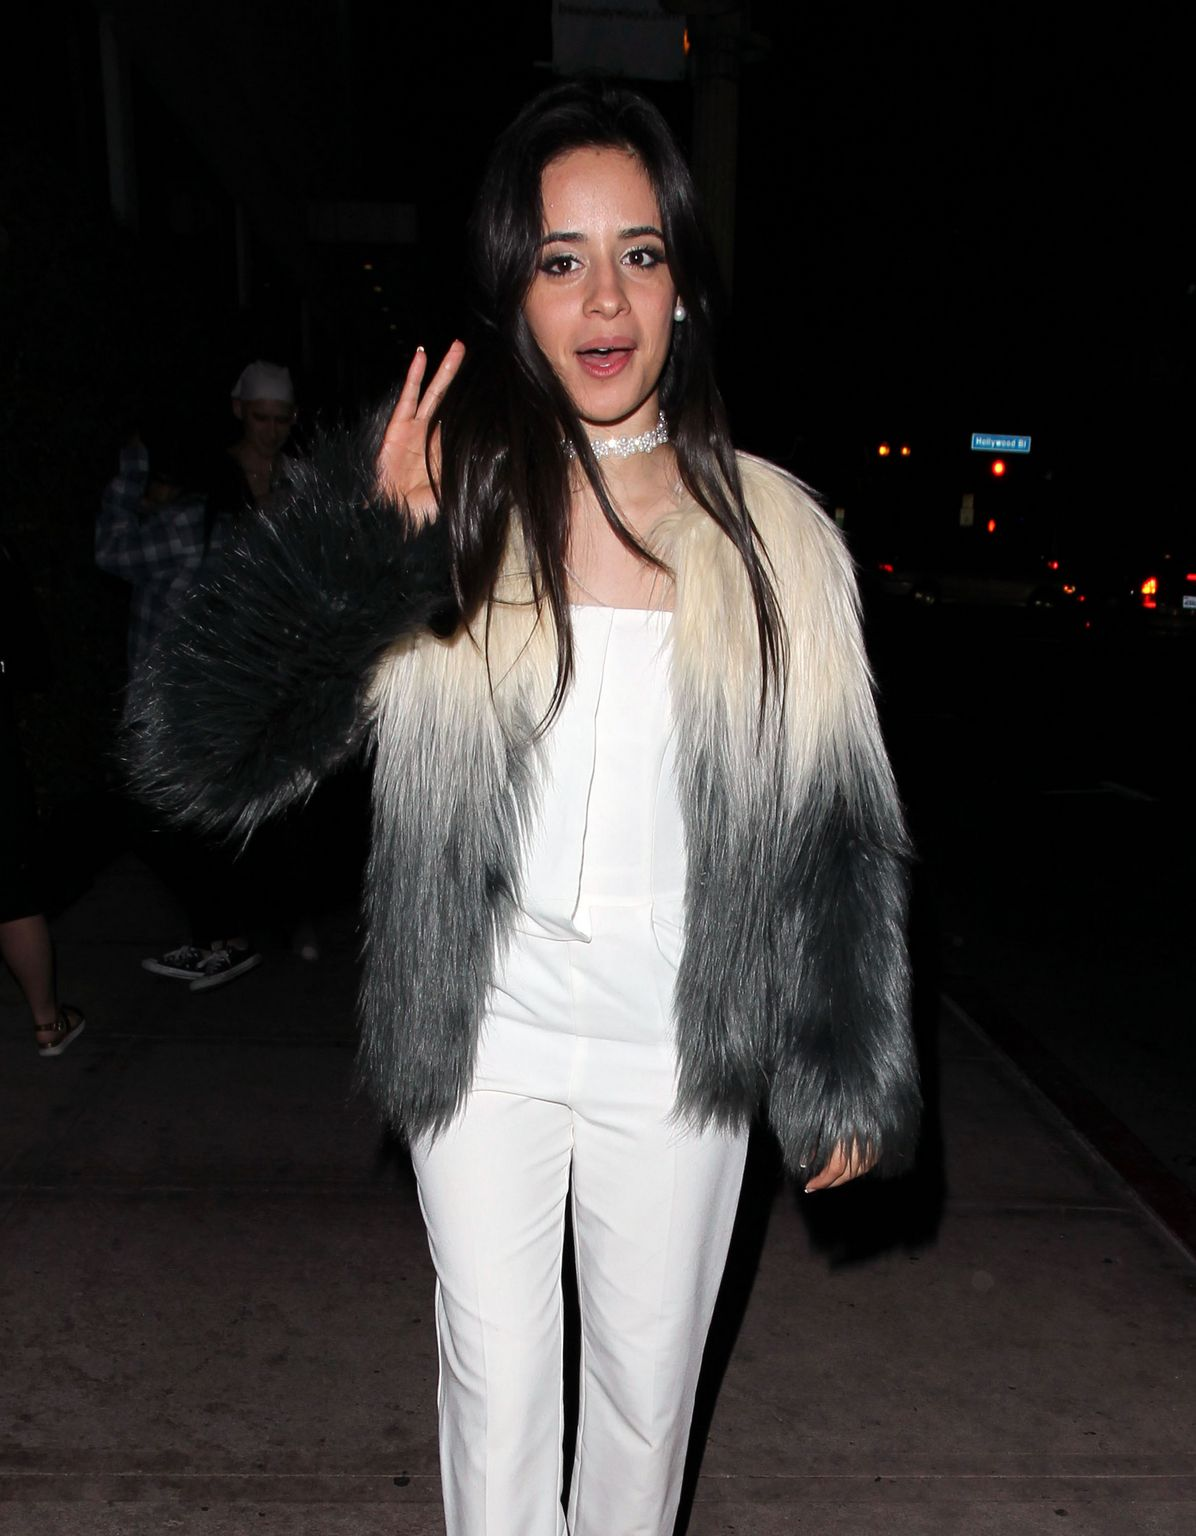 Camila Cabello at Project L.A. night club-1